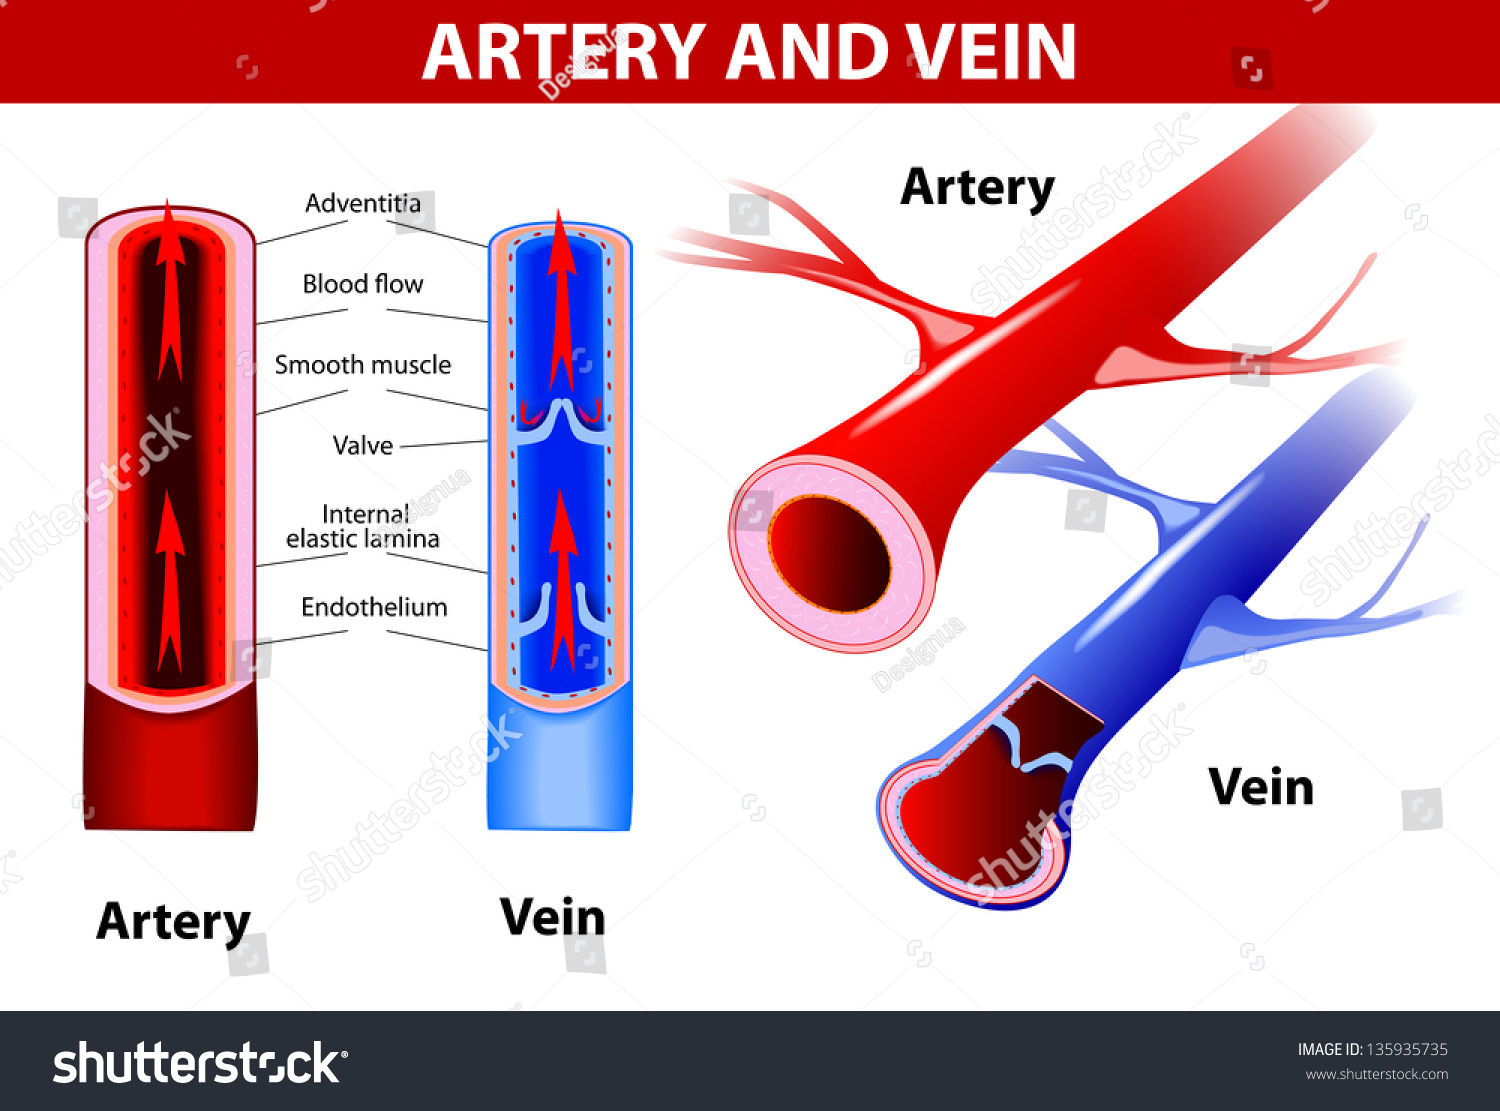 Are Veins Blue Or Red In Diagrams